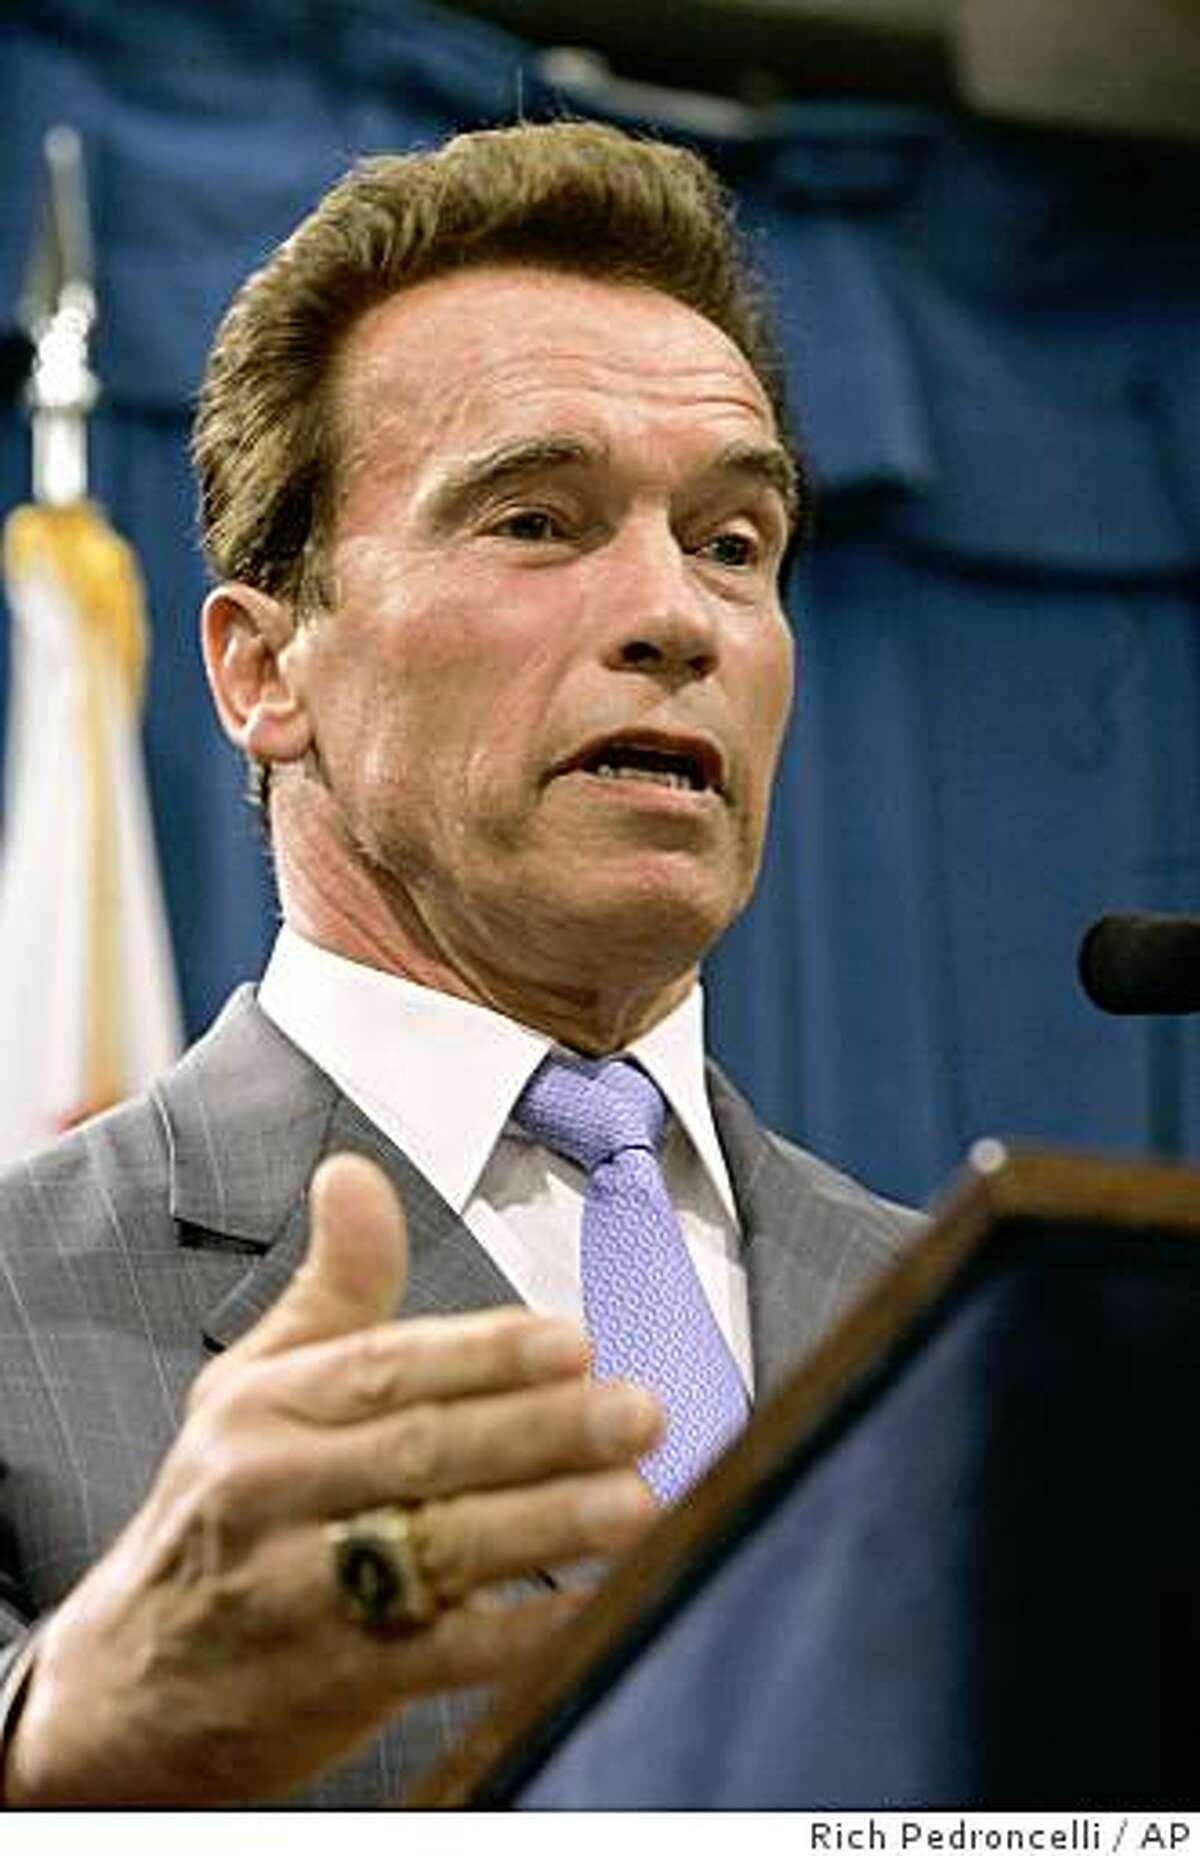 Gov. Arnold Schwarzenegger discusses his proposed 1.5 percent sales tax increase during a Capitol news conference in Sacramento, Calif., Thursday, Nov. 6, 2008. Schwarzenegger proposed the tax increase, along with cuts to the current state budget, to help deal with California's fiscal crisis, which has created an $11.2 billion deficit.(AP Photo/Rich Pedroncelli)